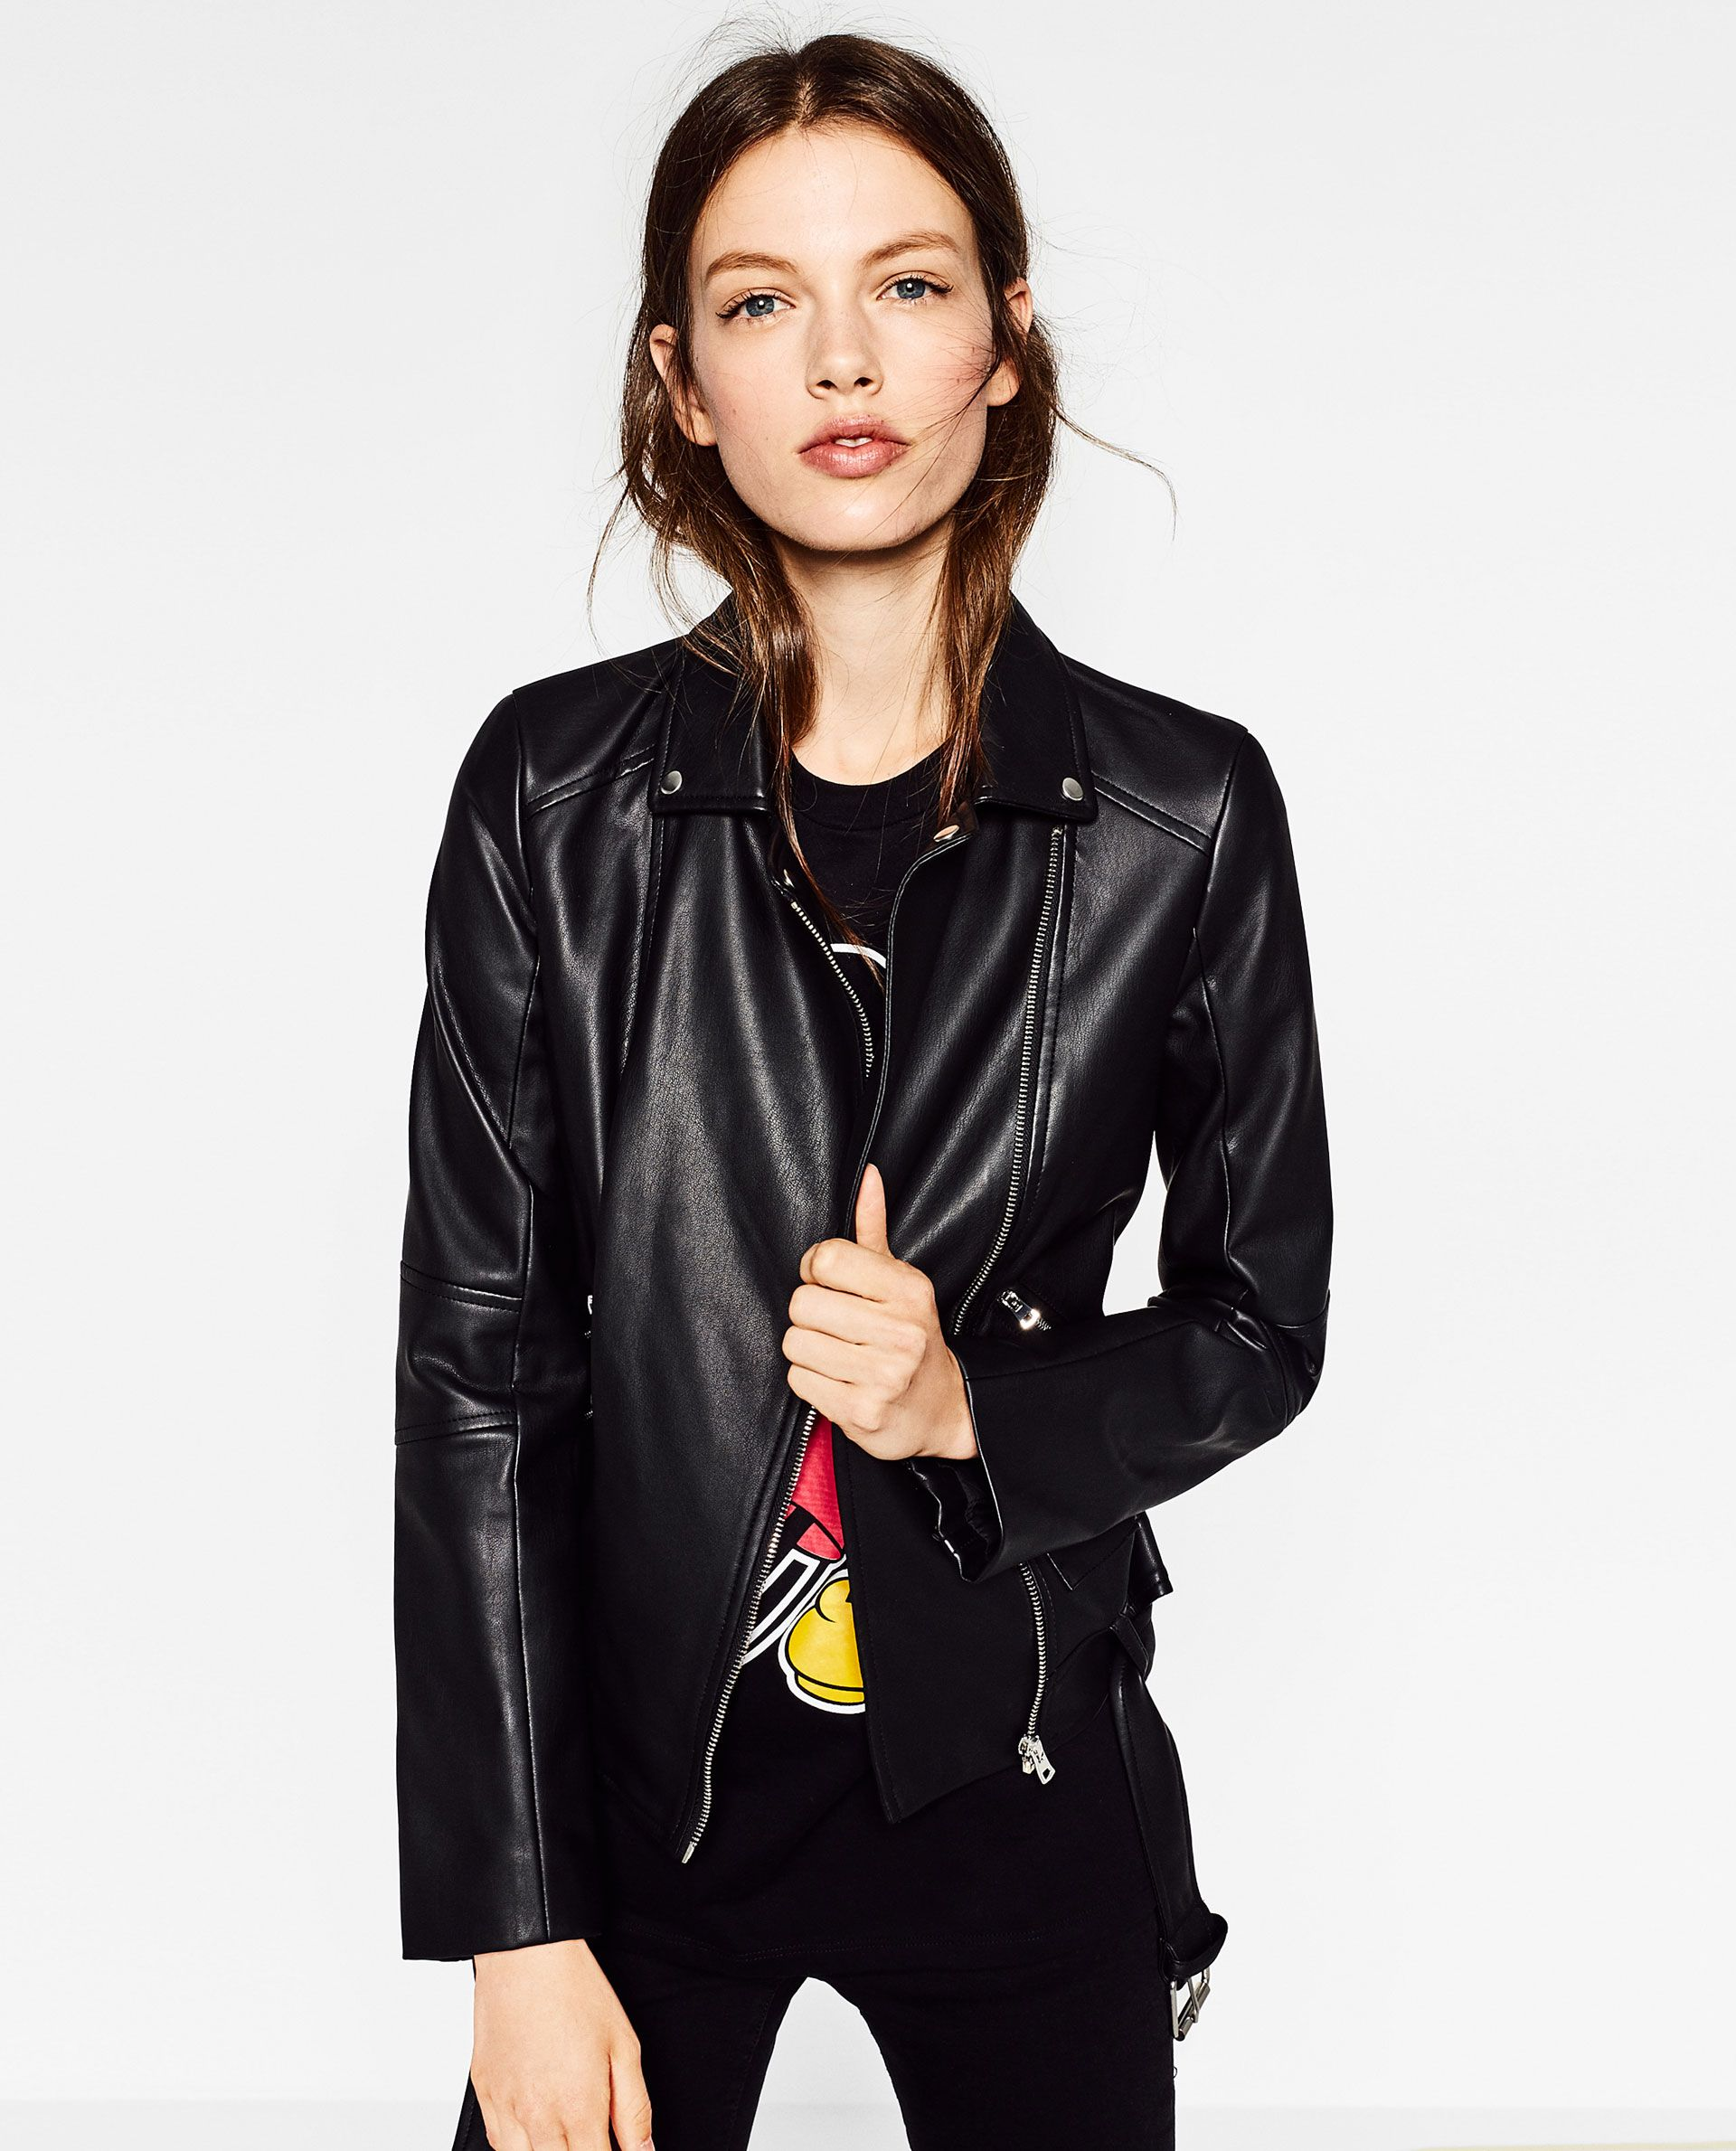 LEATHER EFFECT JACKET Zara leather jacket, Jackets